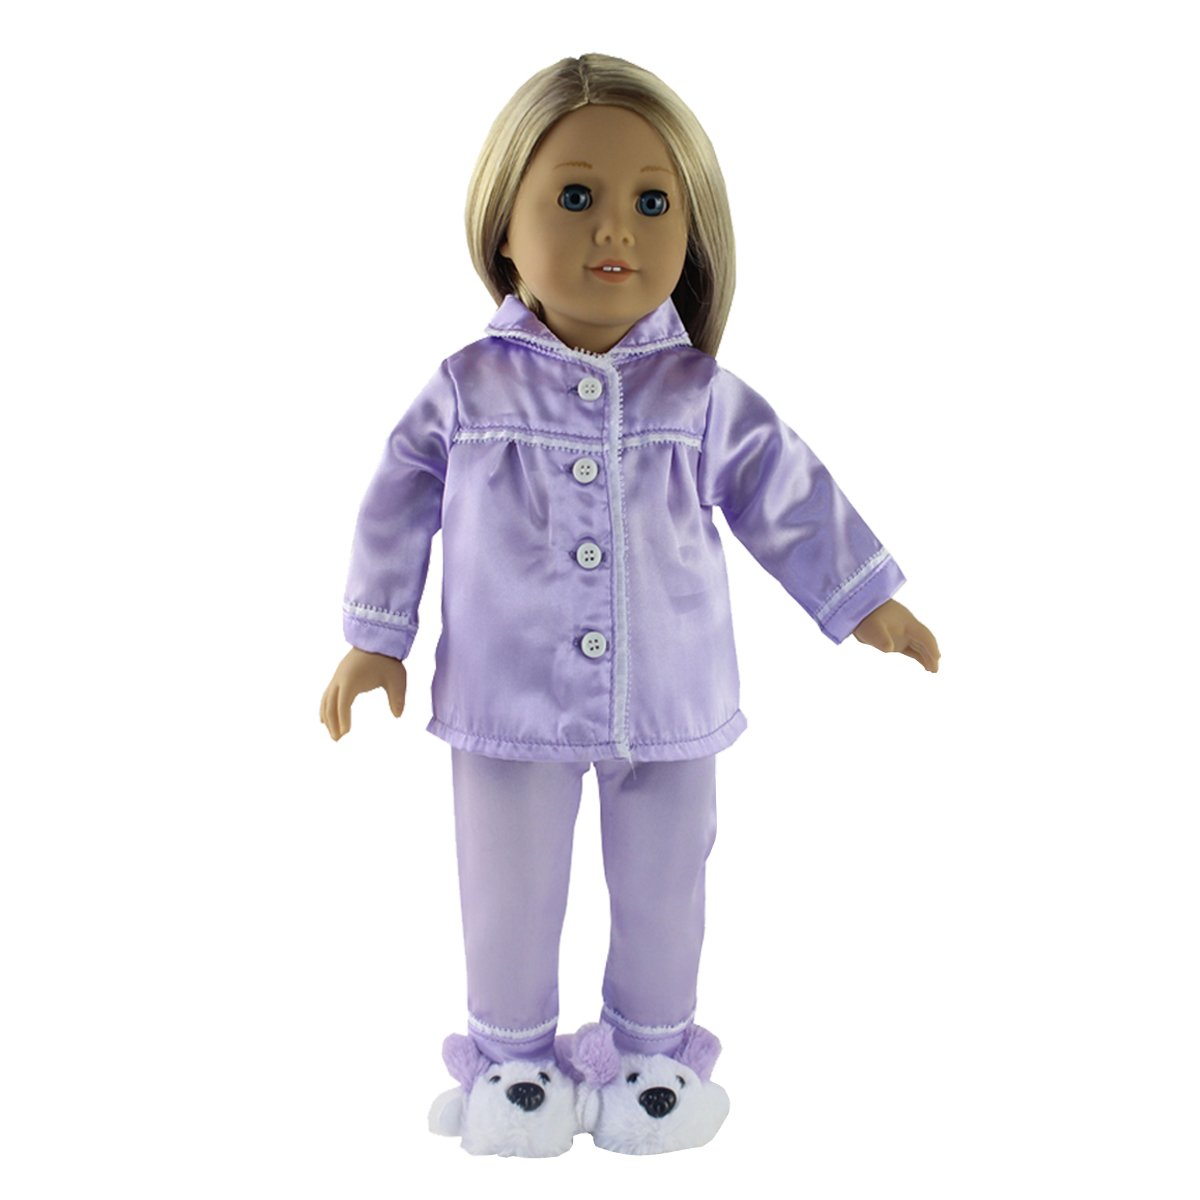 59642f7346a5 Amazon.com  Doll Clothes (2 Piece Sleepwear Pajamas With Shoes Fits ...